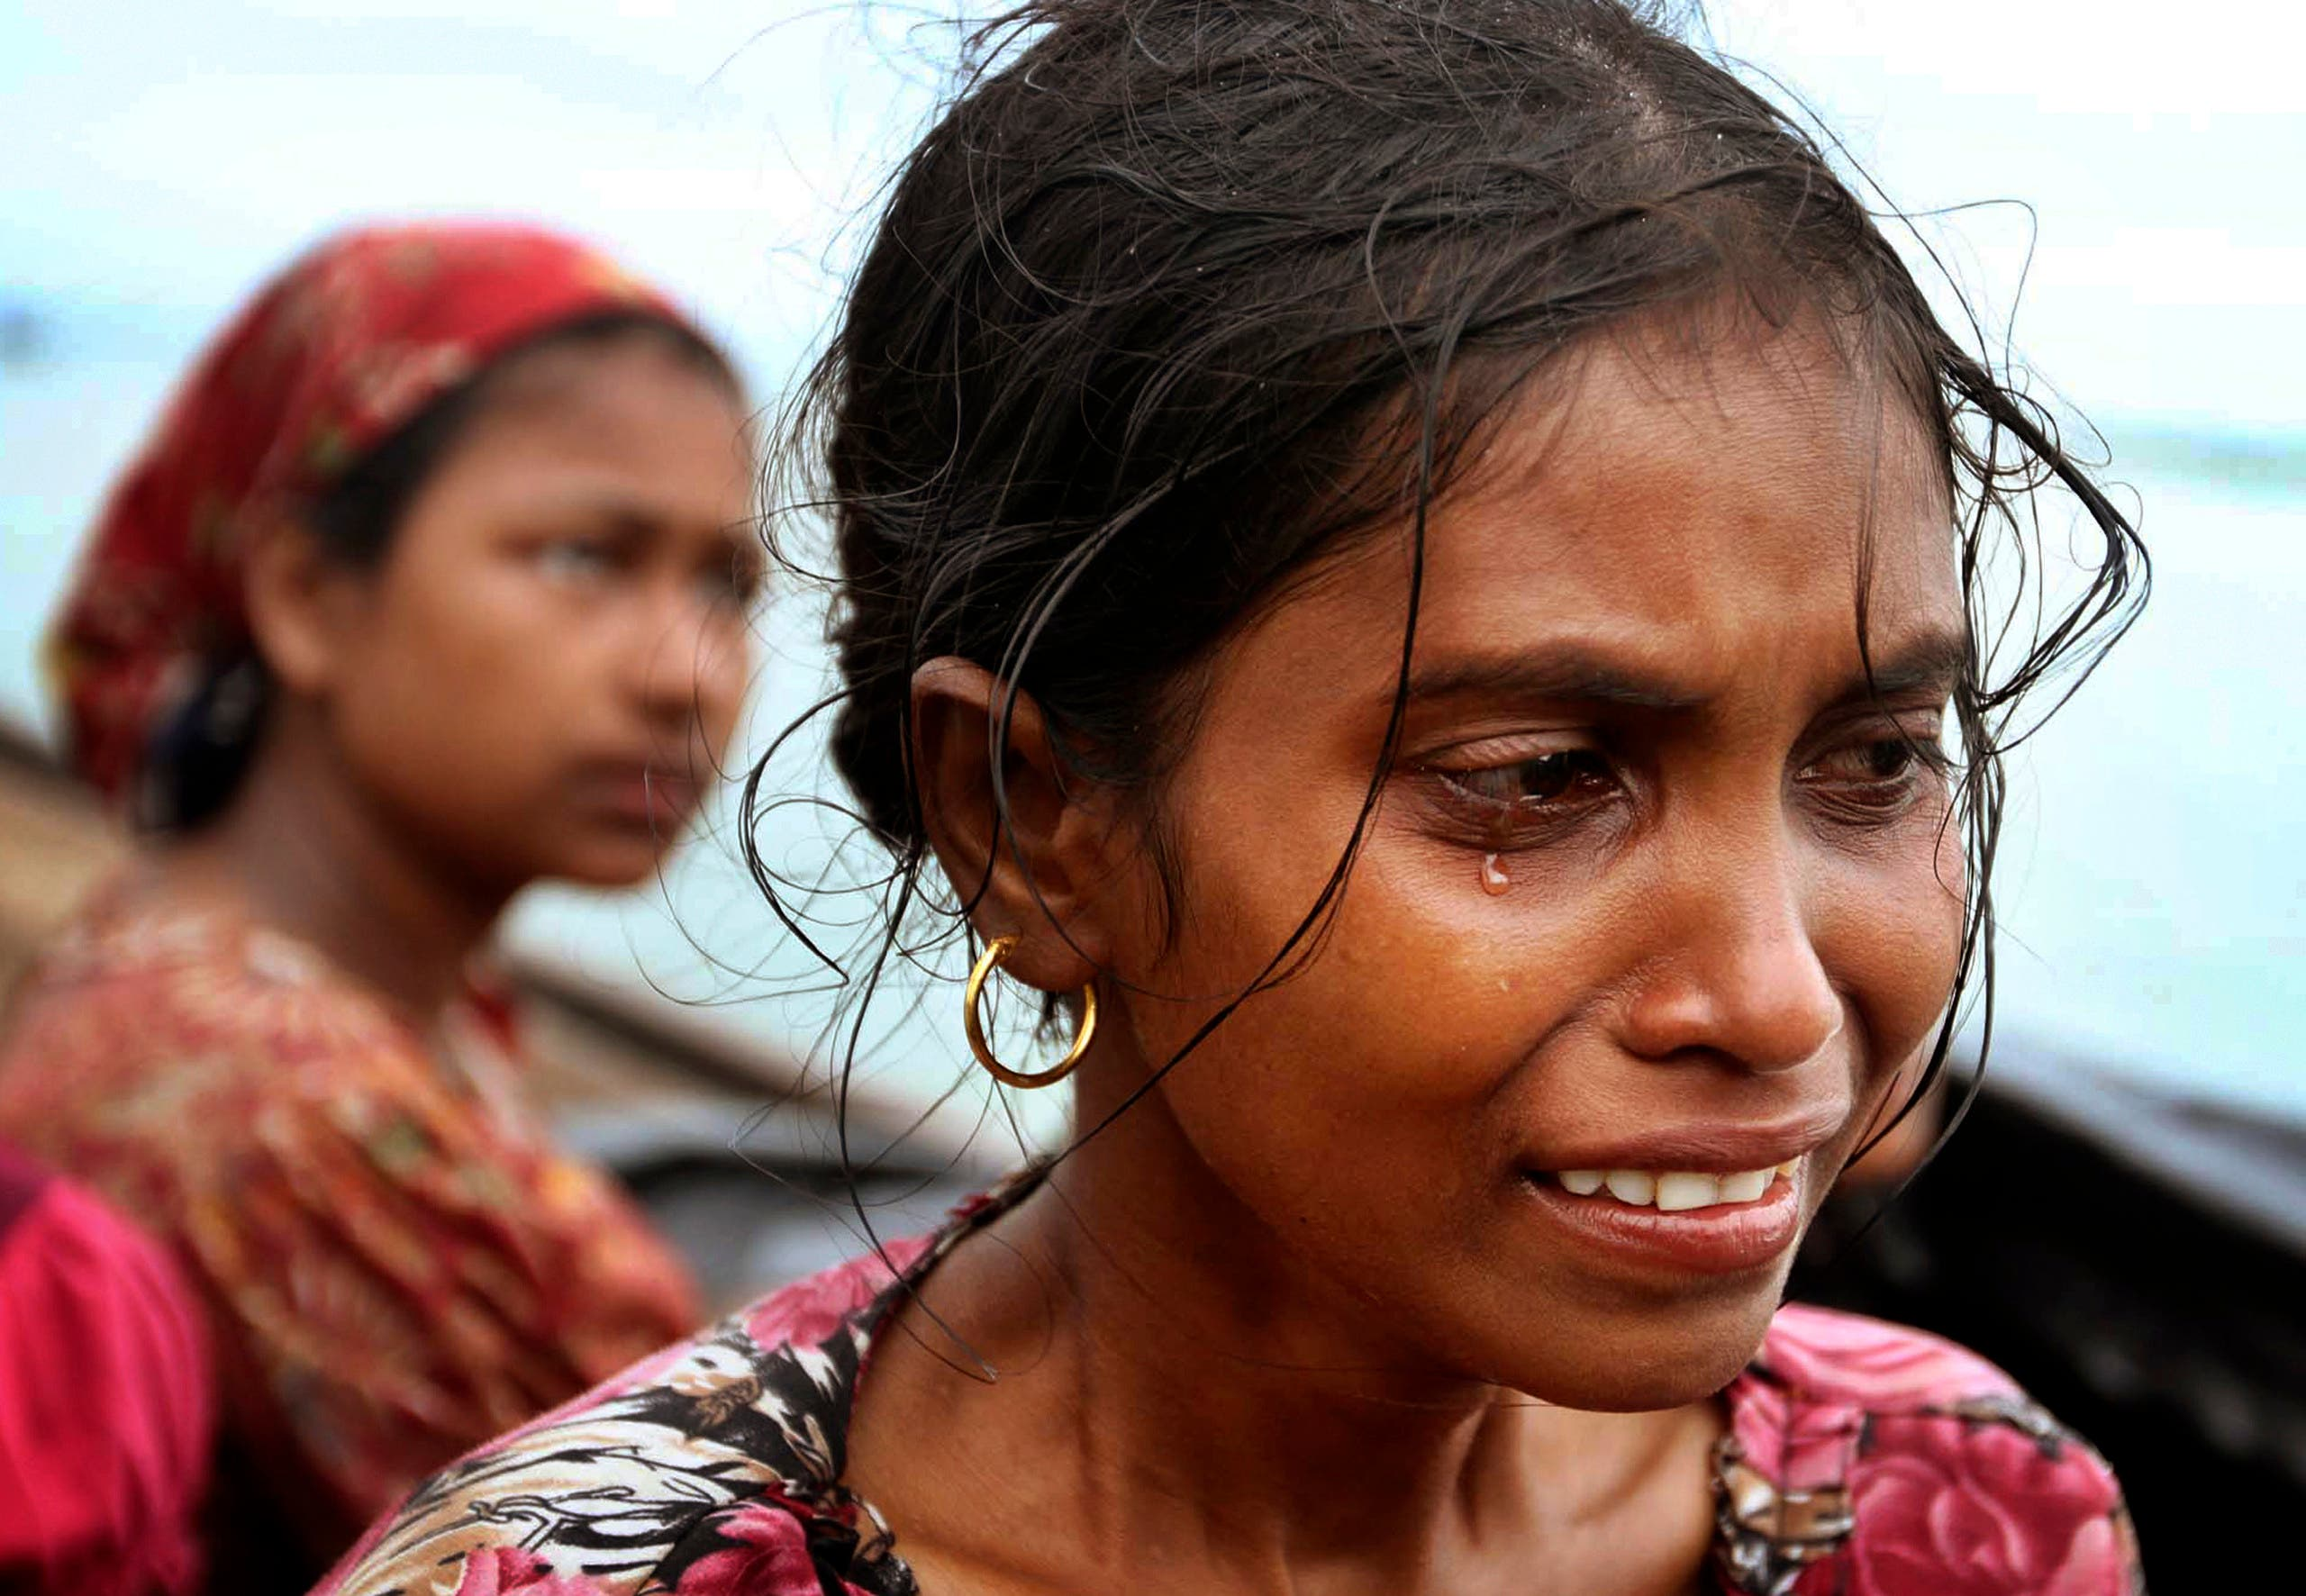 A Rohingya Muslim woman who fled Myanmar to Bangladesh to escape religious violence, cries as she sits in a boat after she and others were intercepted crossing the Naf River by Bangladesh border authorities in Taknaf, Bangladesh, Wednesday, June 13, 2012.